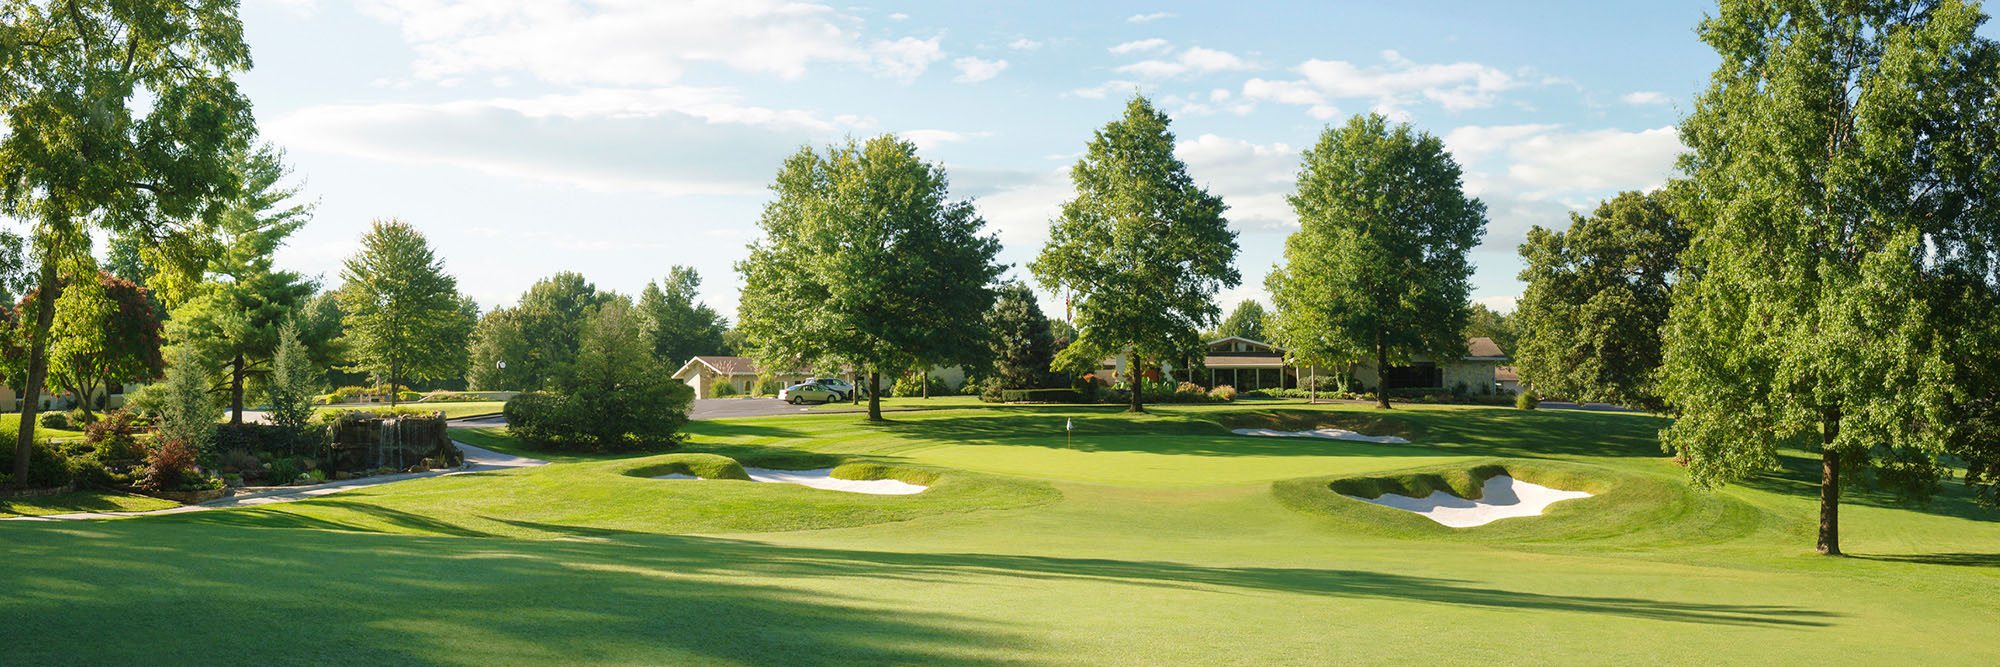 Golf Course Image - Twin Oaks Country Club No. 18